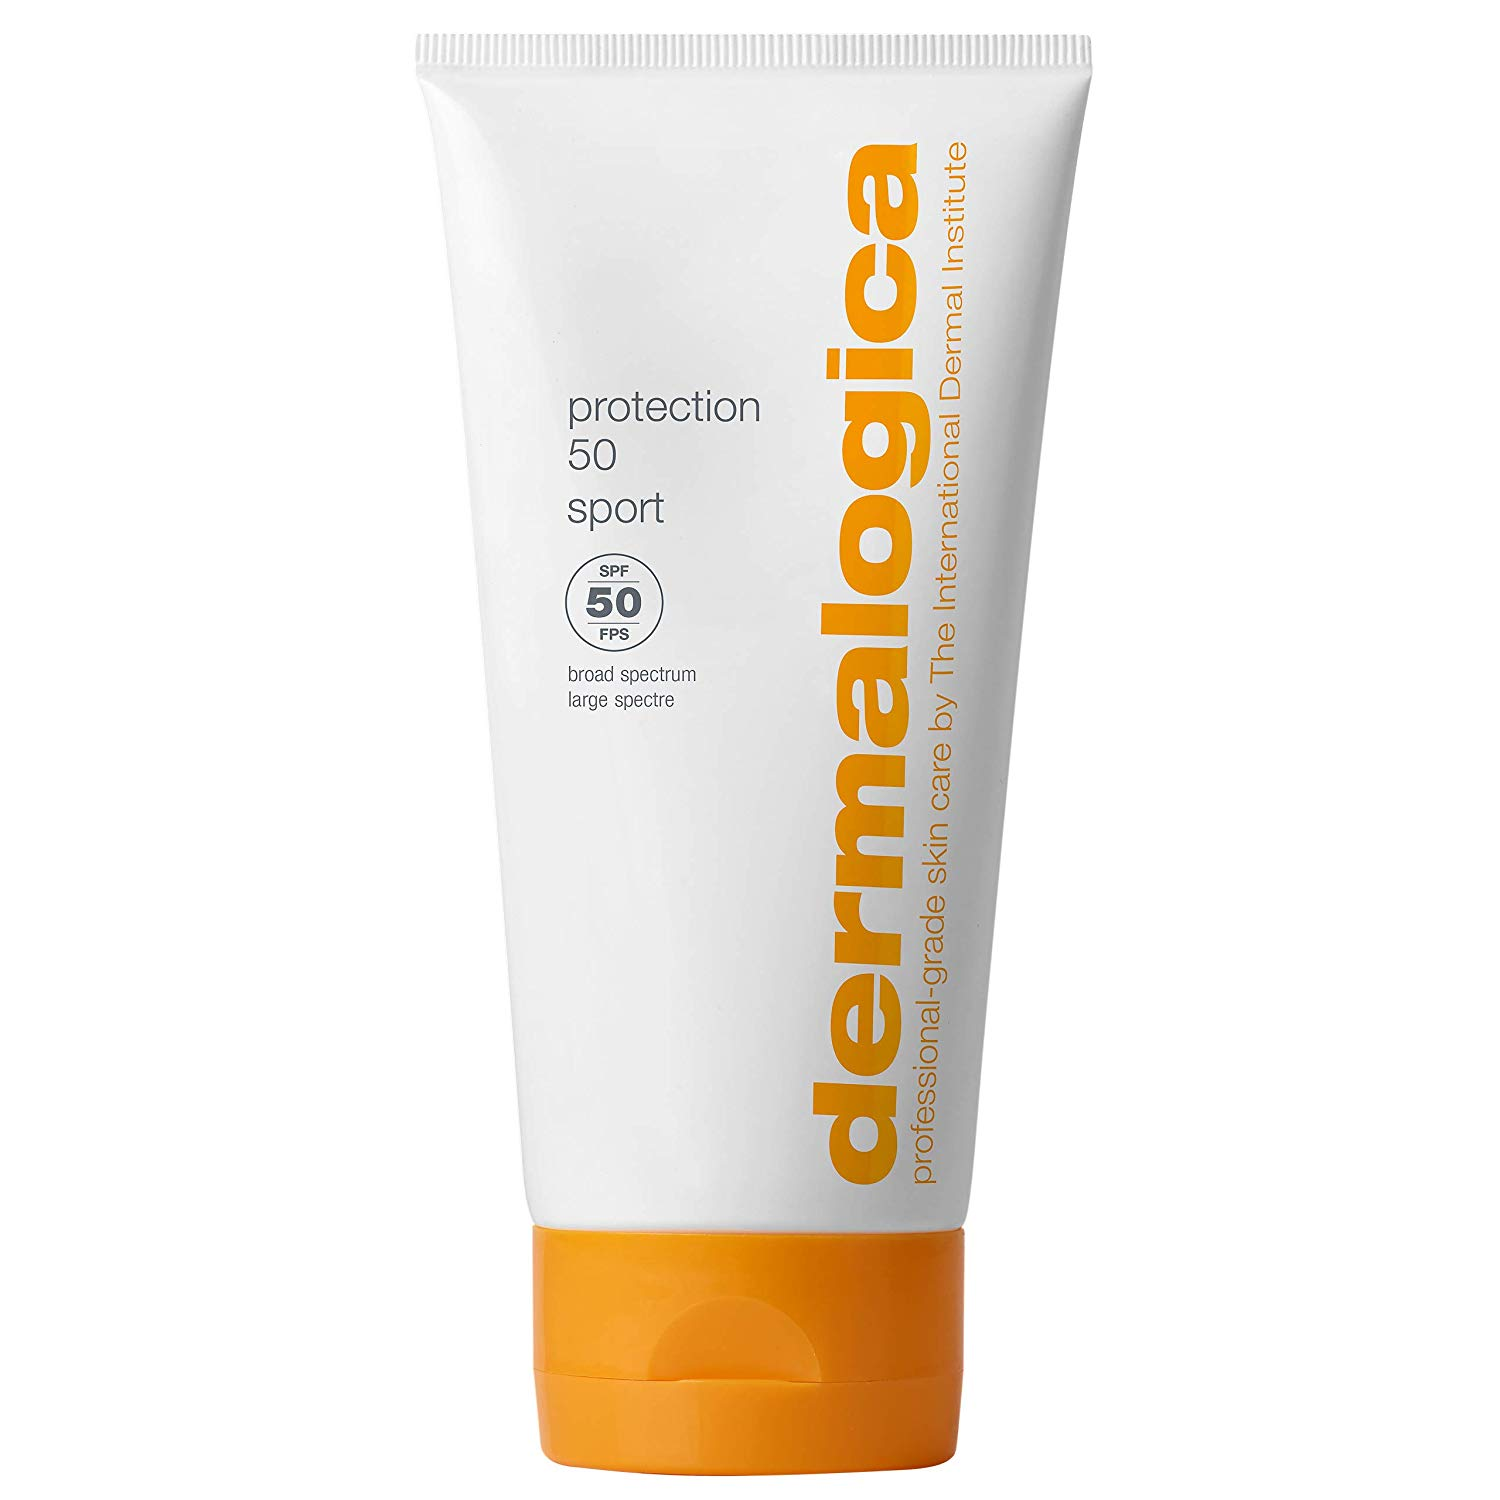 Dermalogica Protection 50 Sport SPF50, 5.3 Fl Oz